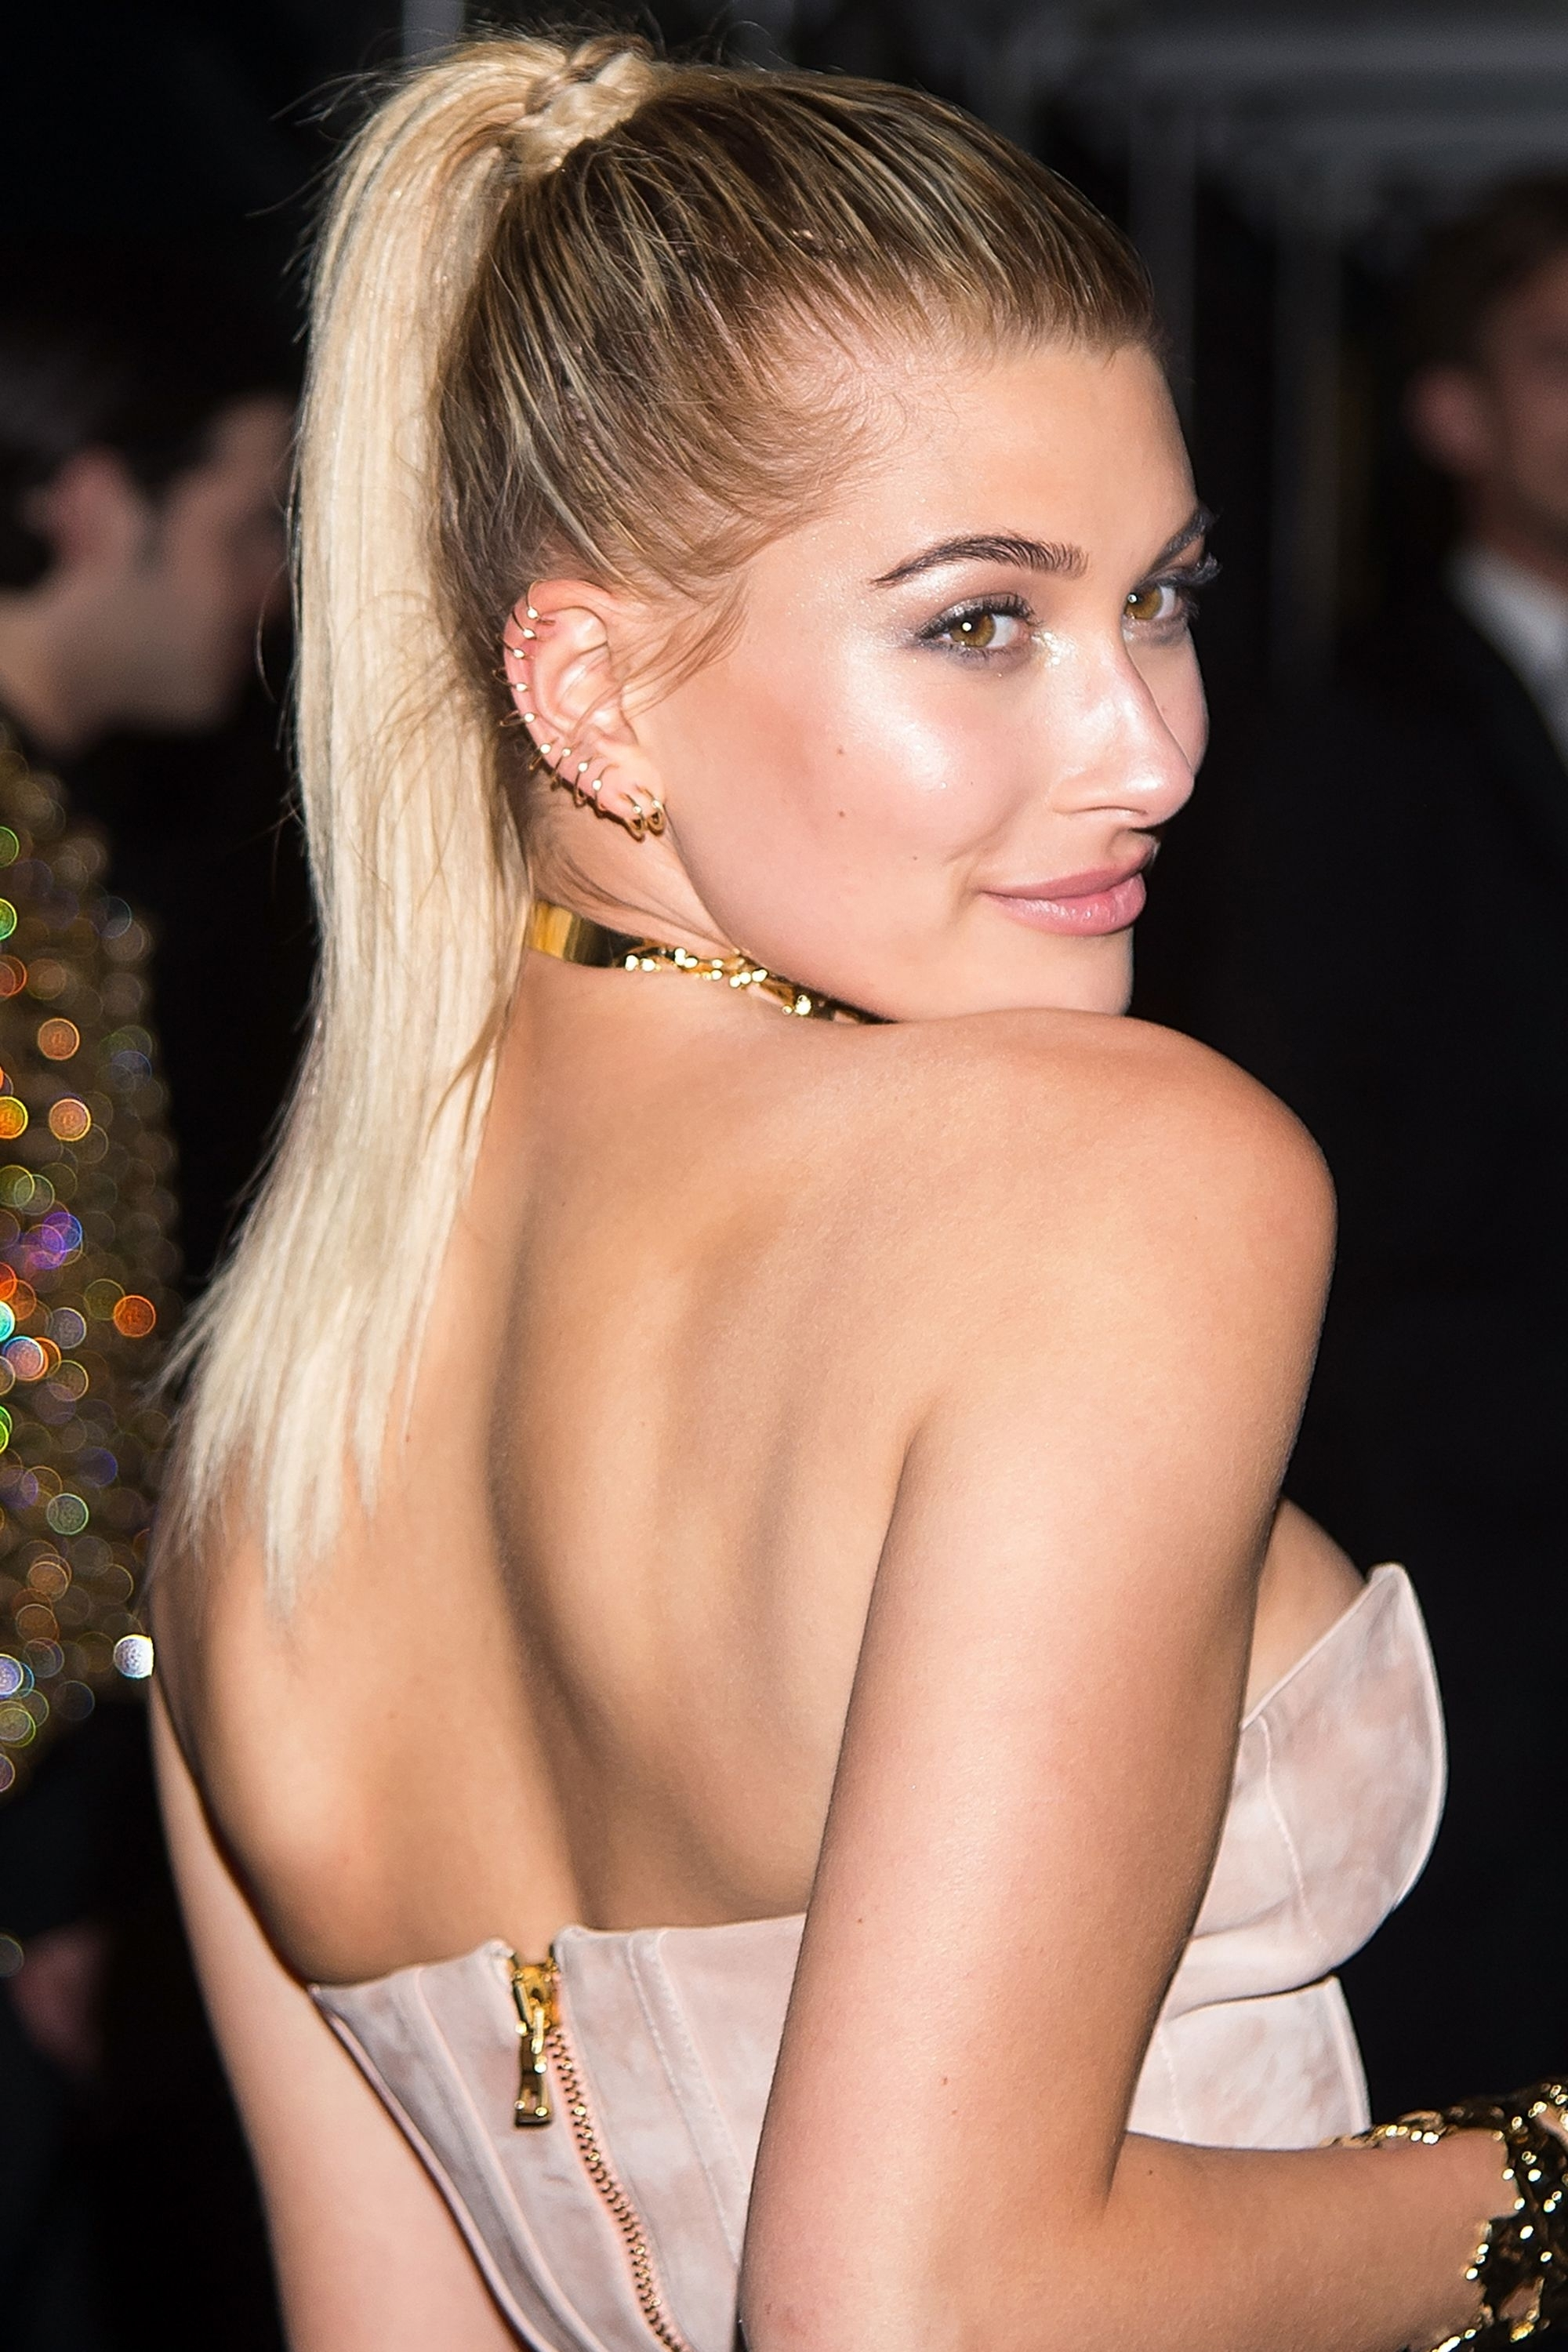 20 New Ways To Wear A Ponytail – Best Celebrity Ponytails Of 2017 Within Well Known Poofy Pony Hairstyles With Face Framing Strands (View 5 of 20)